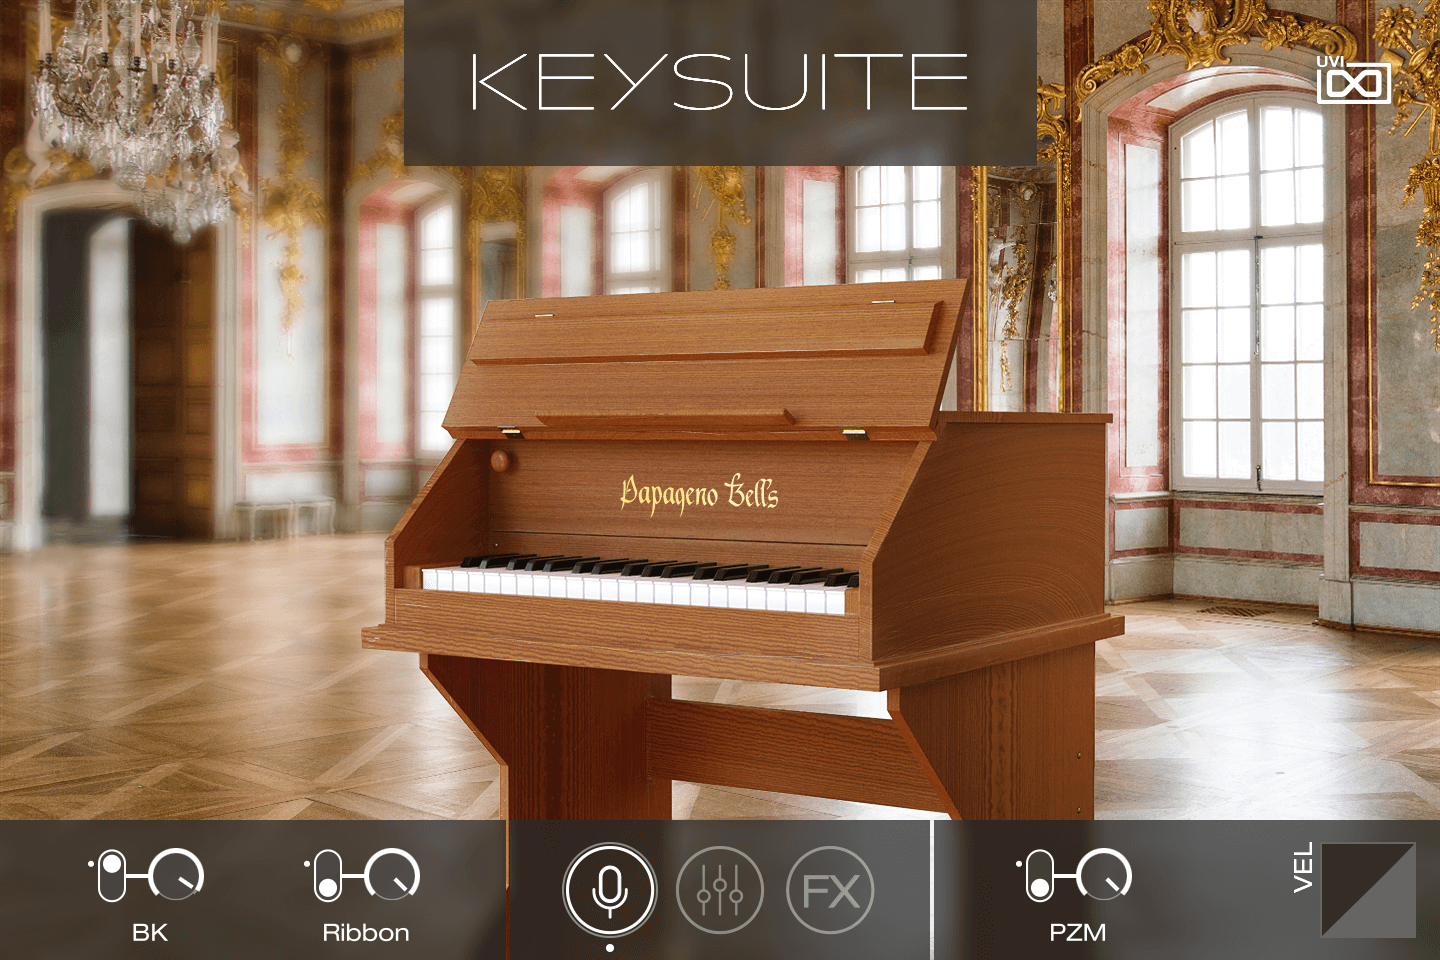 uvi launches key suite acoustic essential keys collection at 149 usd. Black Bedroom Furniture Sets. Home Design Ideas